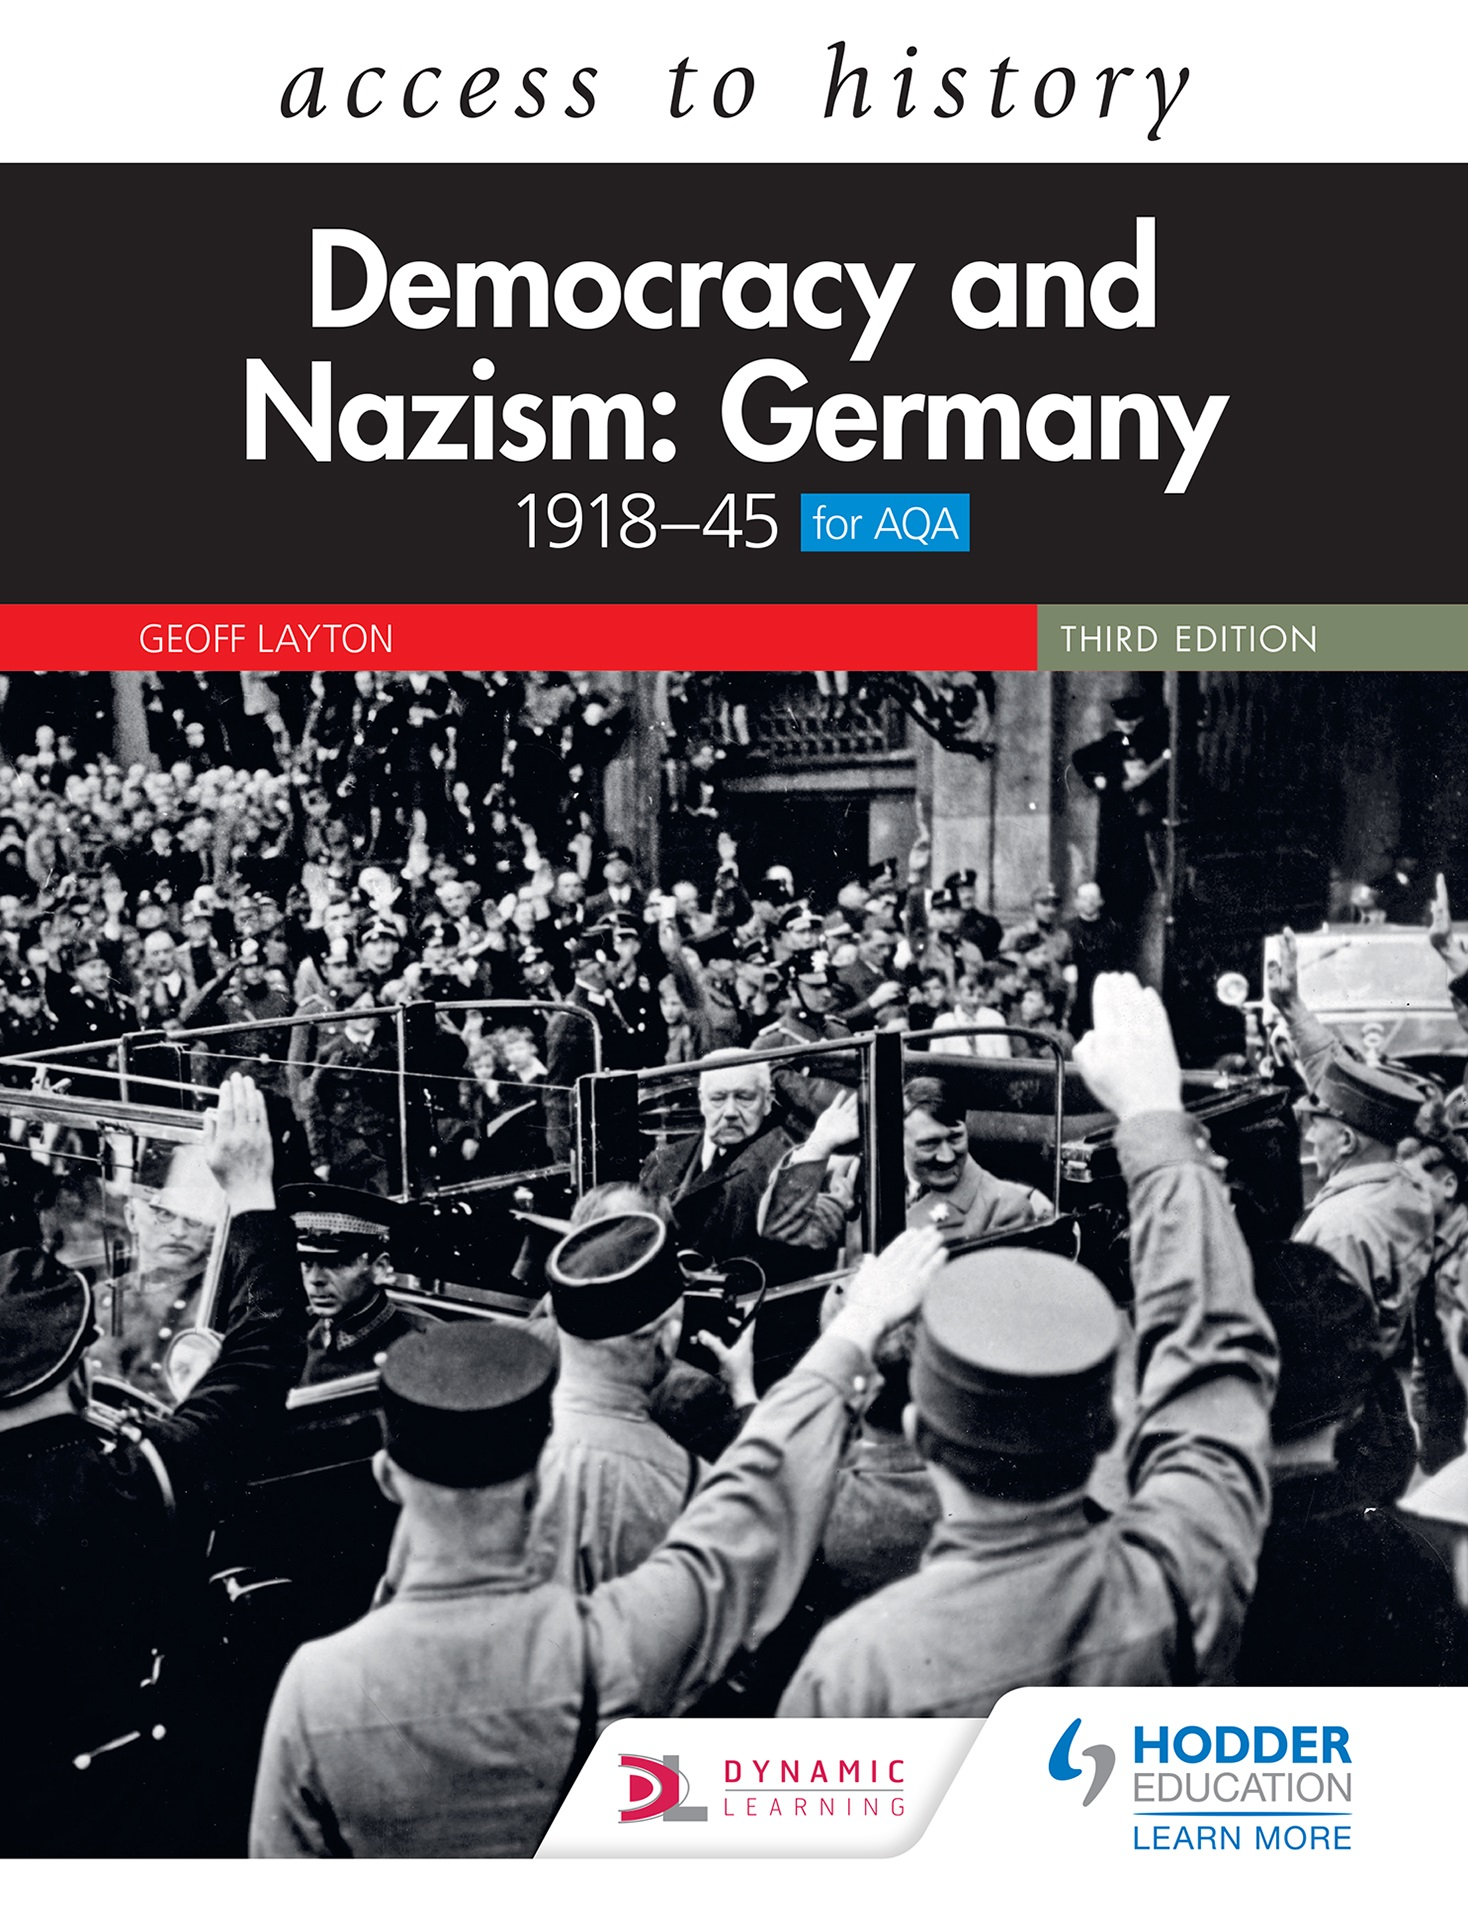 Access to History: Democracy and Nazism: Germany 1918–45 for AQA Third Edition